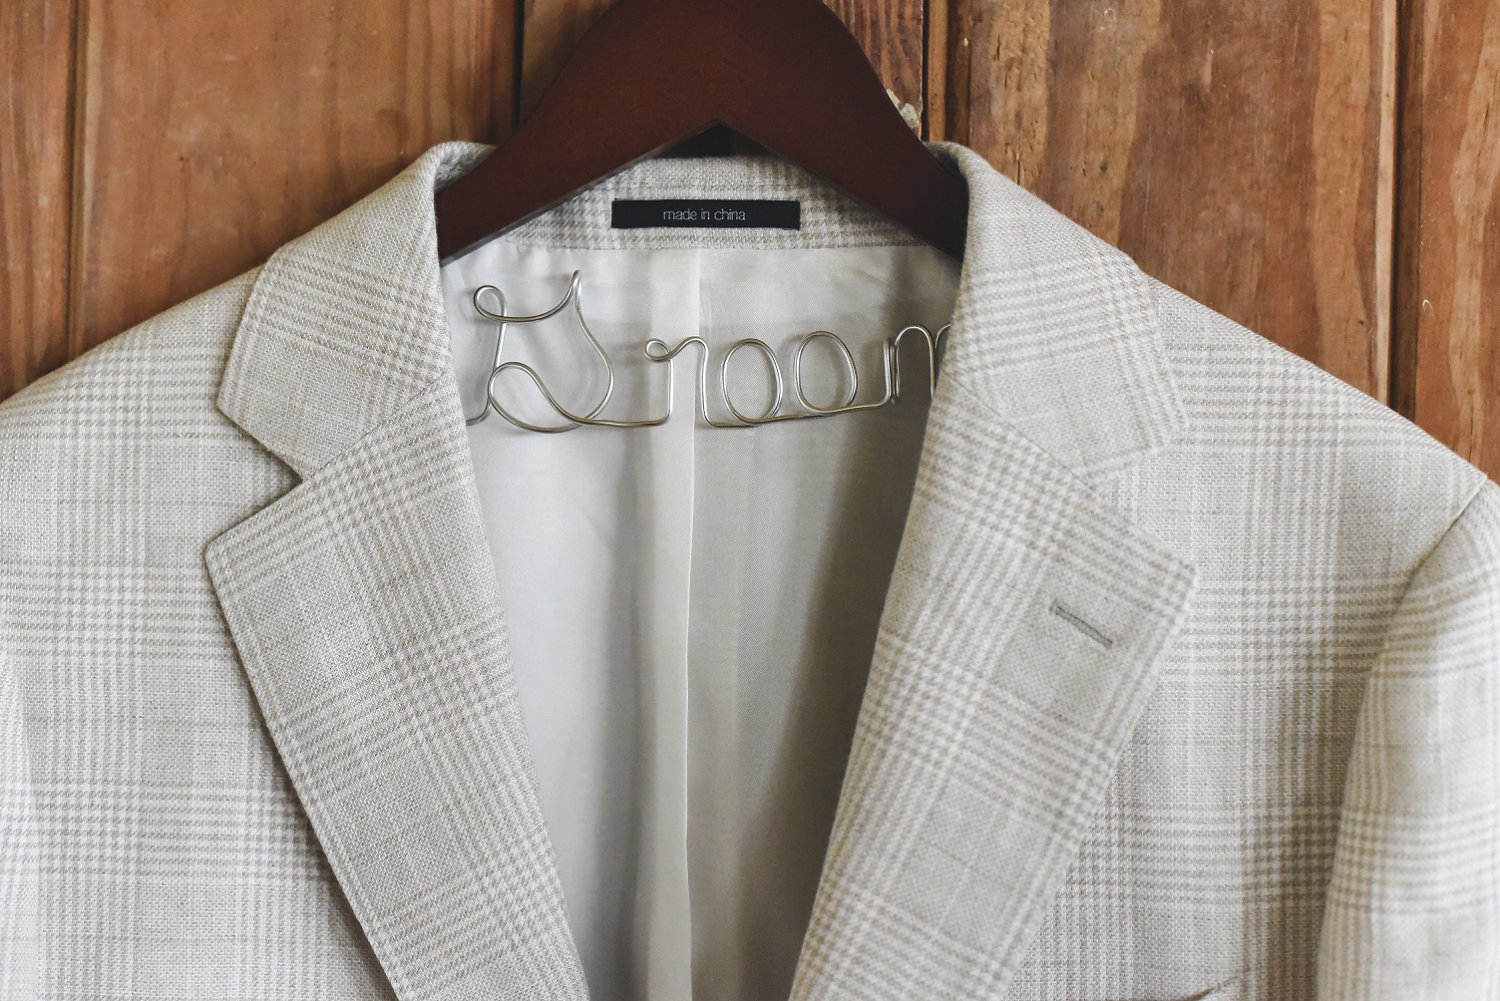 Custom decorative hanger to hold groom's suit jacket.